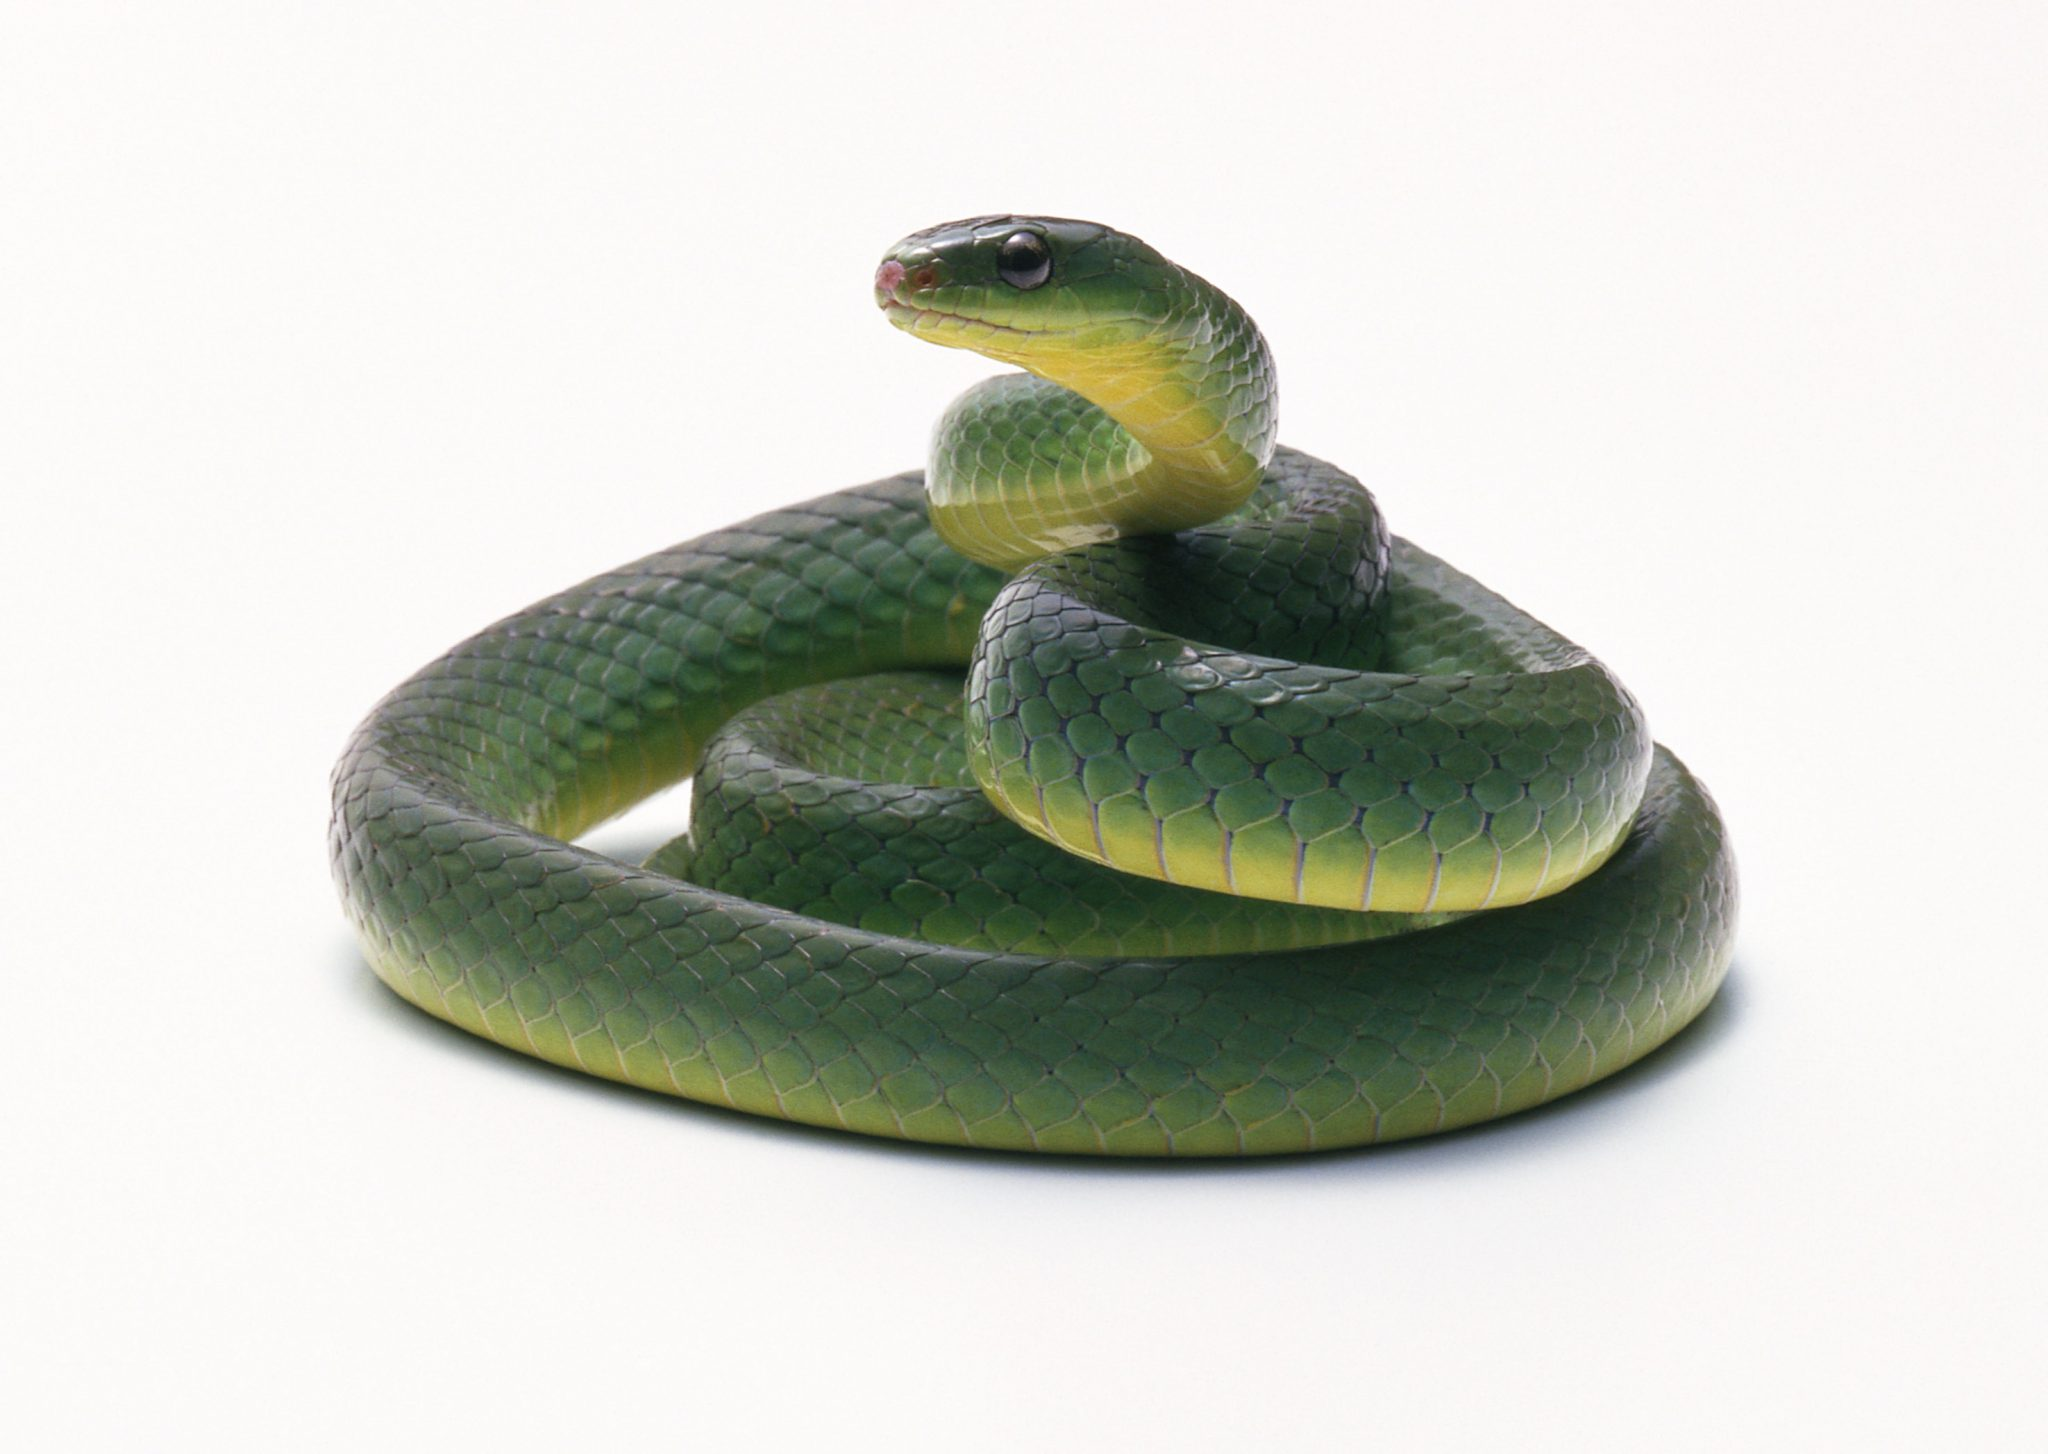 The Snake Diet is Another Weight-Loss Trend to Avoid